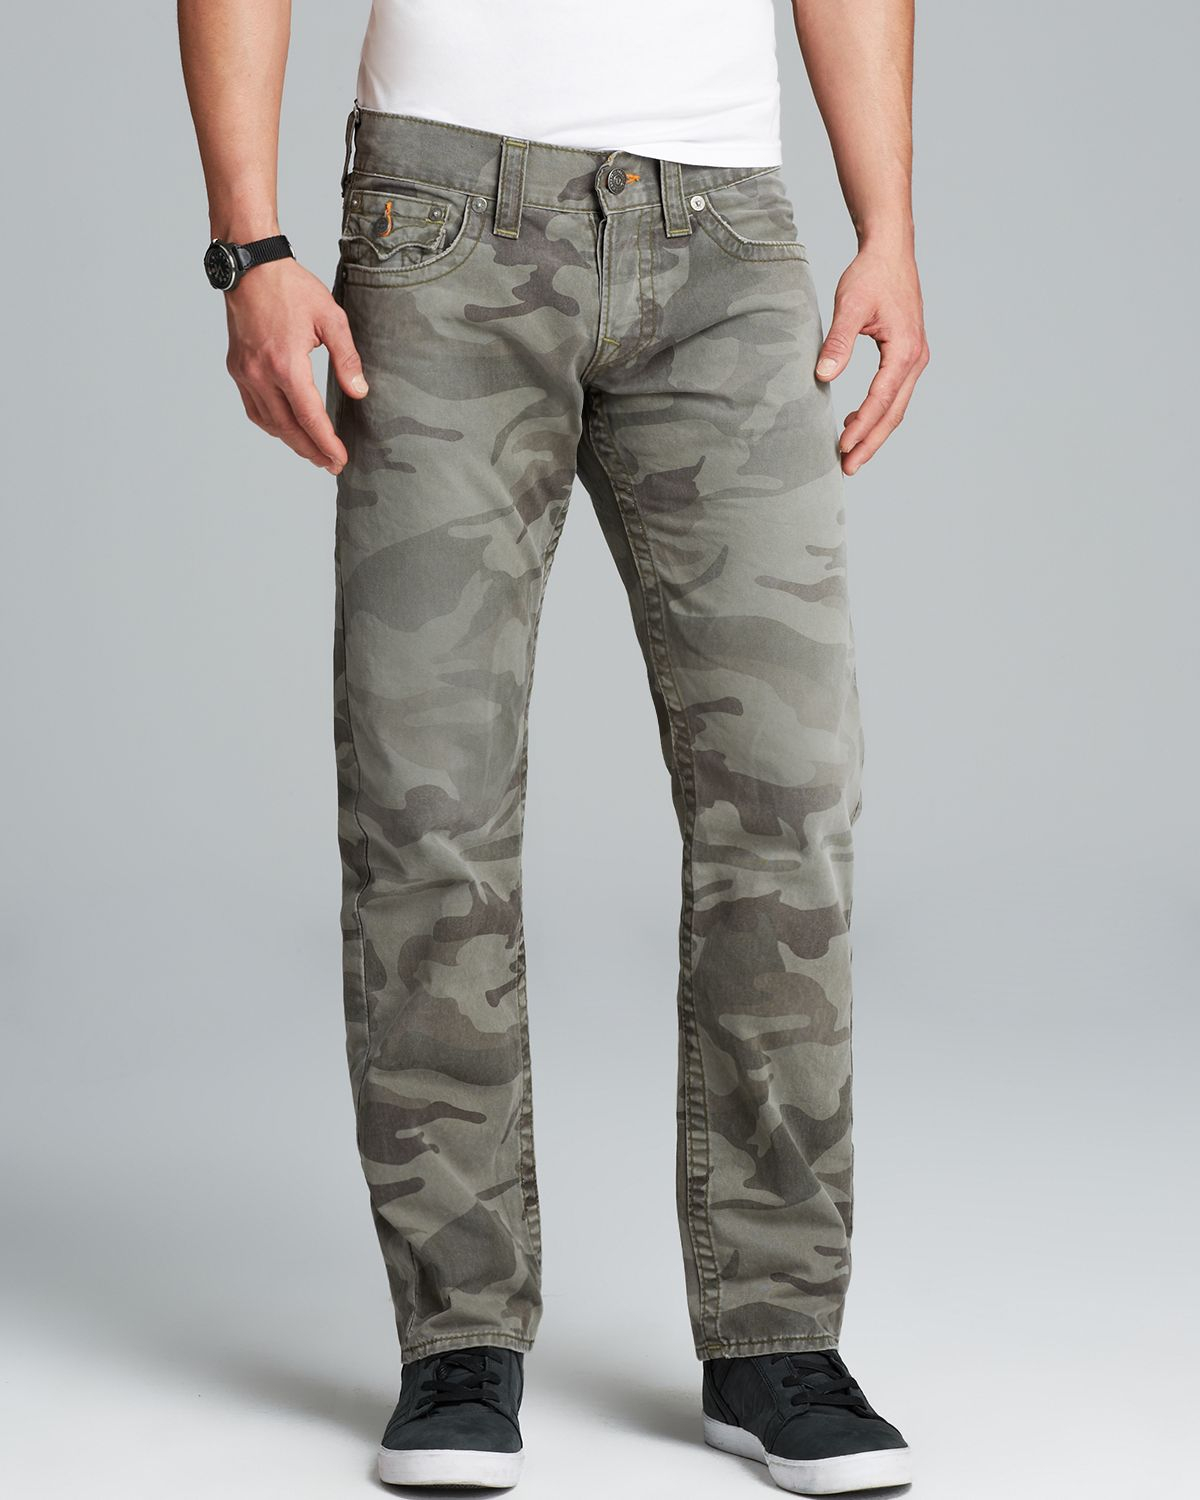 Lyst True Religion Jeans Ricky Straight Fit In Camo In